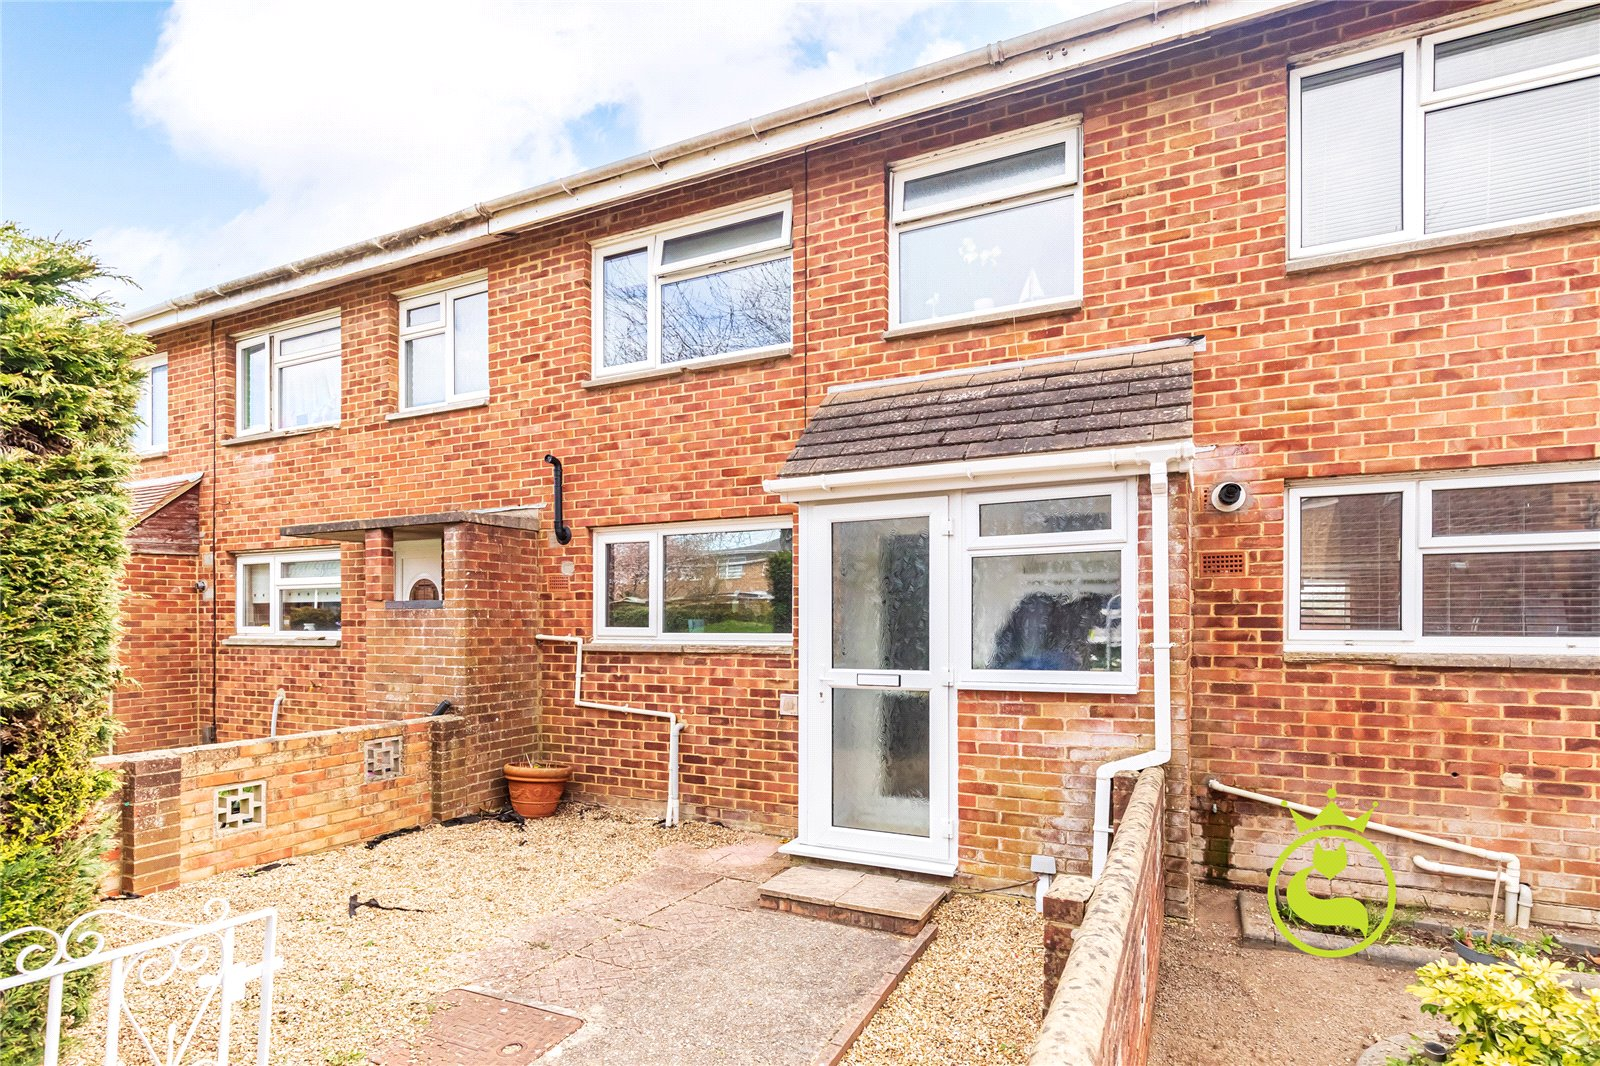 3 bed house for sale in Millfield, Creekmoor - Property Image 1